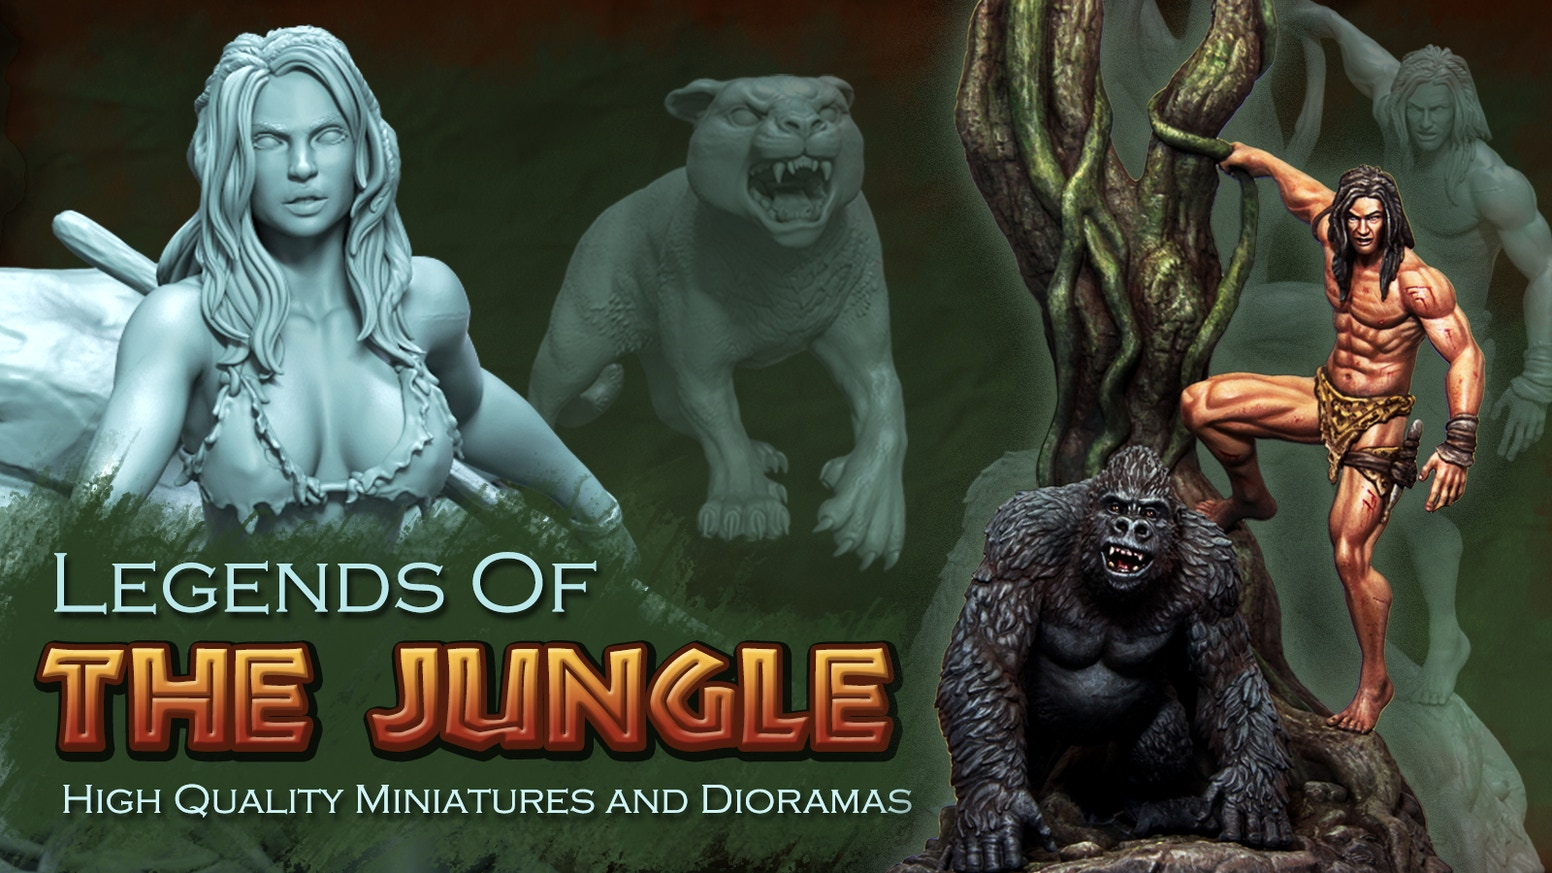 legends of the jungle by oliver posvek  legends of the jungle is a project to create a new and special line of high quality 75 mm and 54 mm scale characters and animals